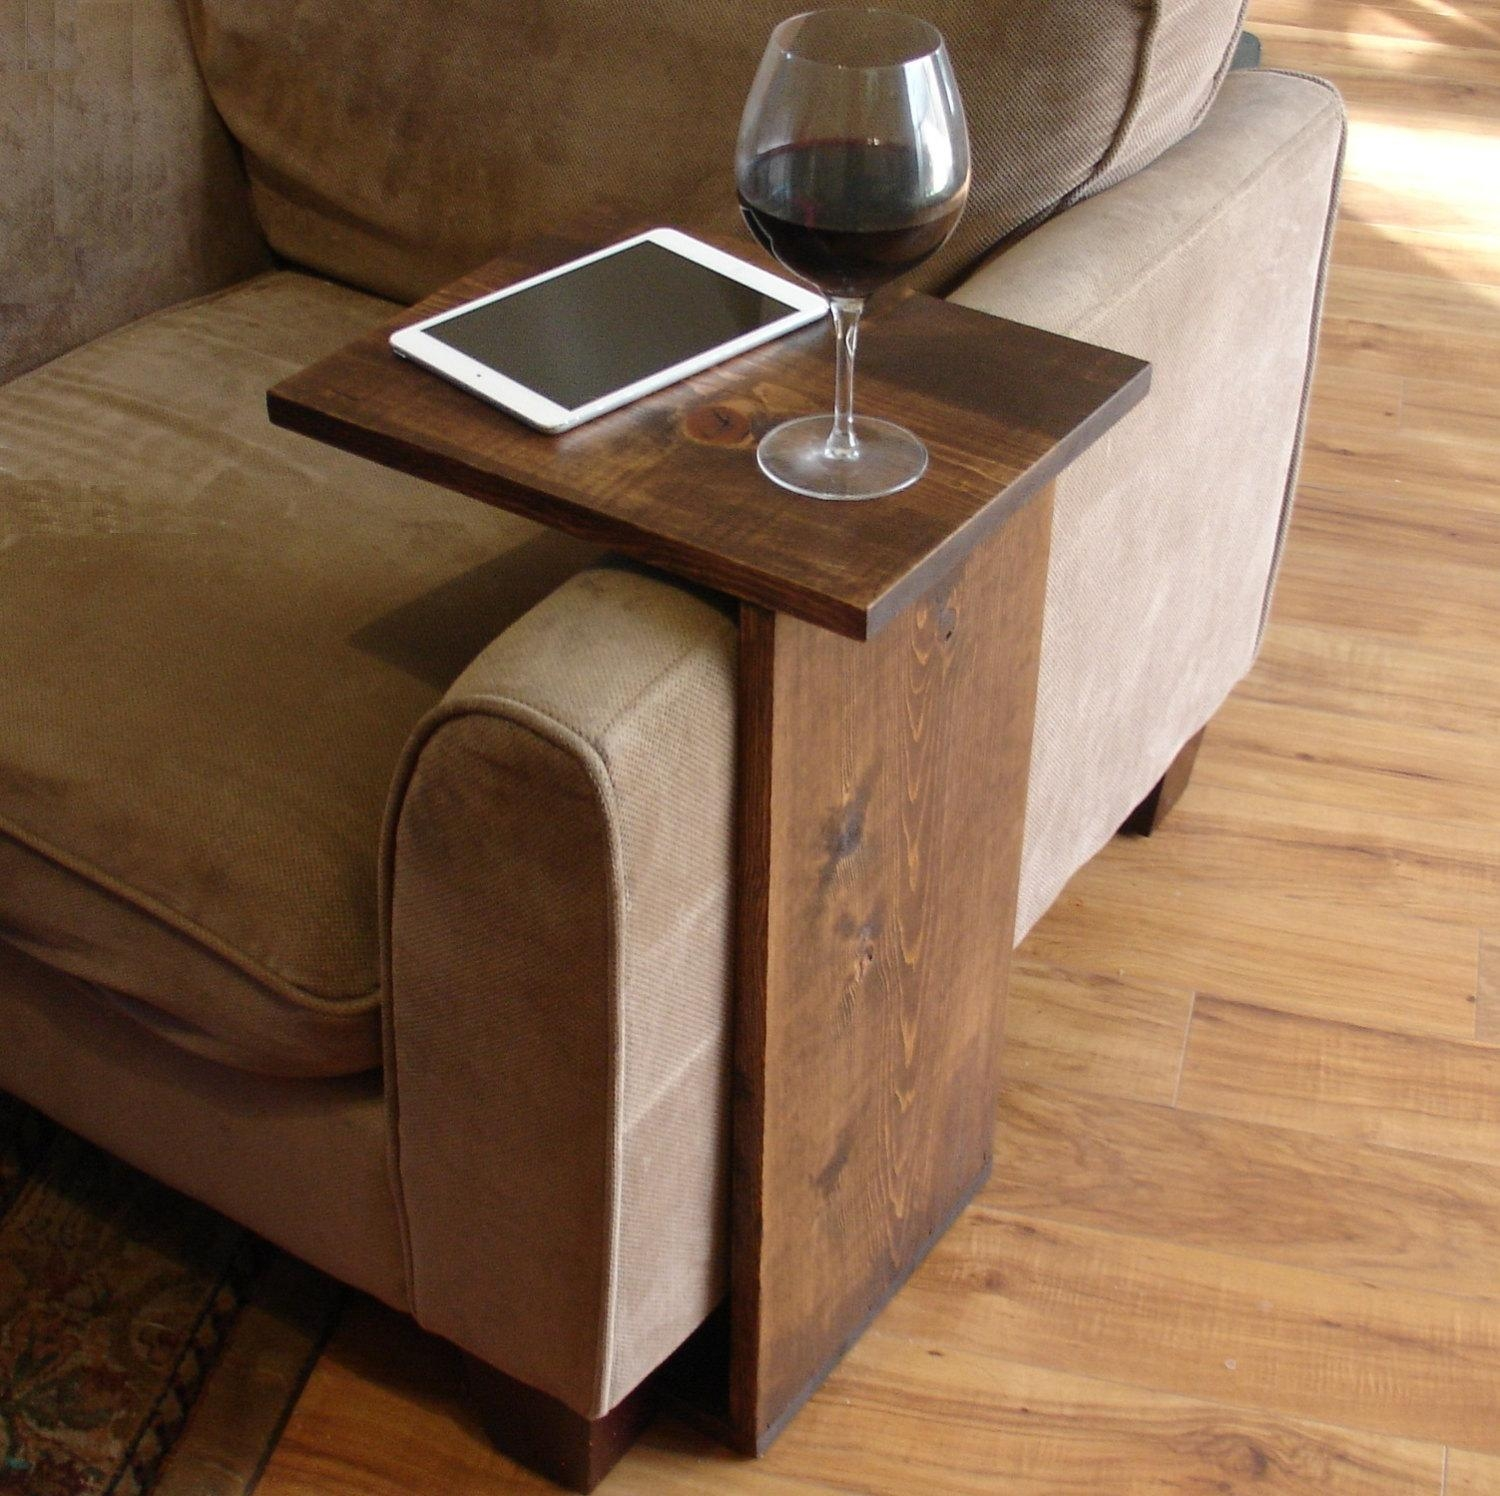 Sofa Chair Arm Rest Tray Table Stand Throughout Sofa Drink Tables (View 7 of 20)